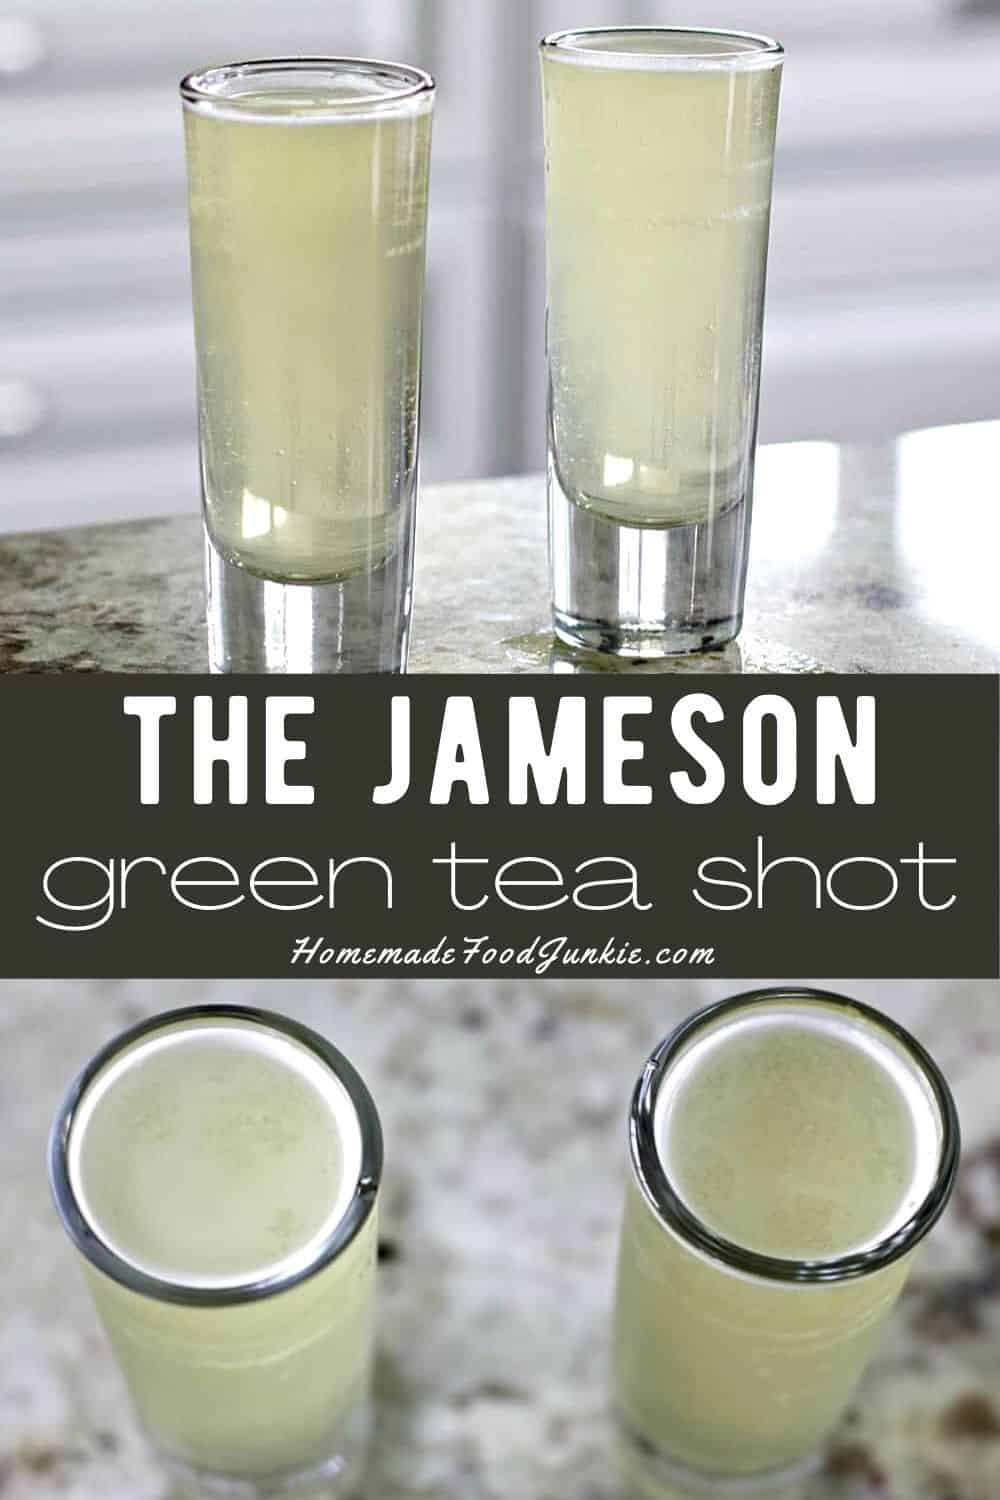 Our Tutorial Will Walk You Through How To Make A Green Tea Shot This Cocktail Is Also Known As The James Green Tea Shot Green Tea Drinks Peach Schnapps Drinks